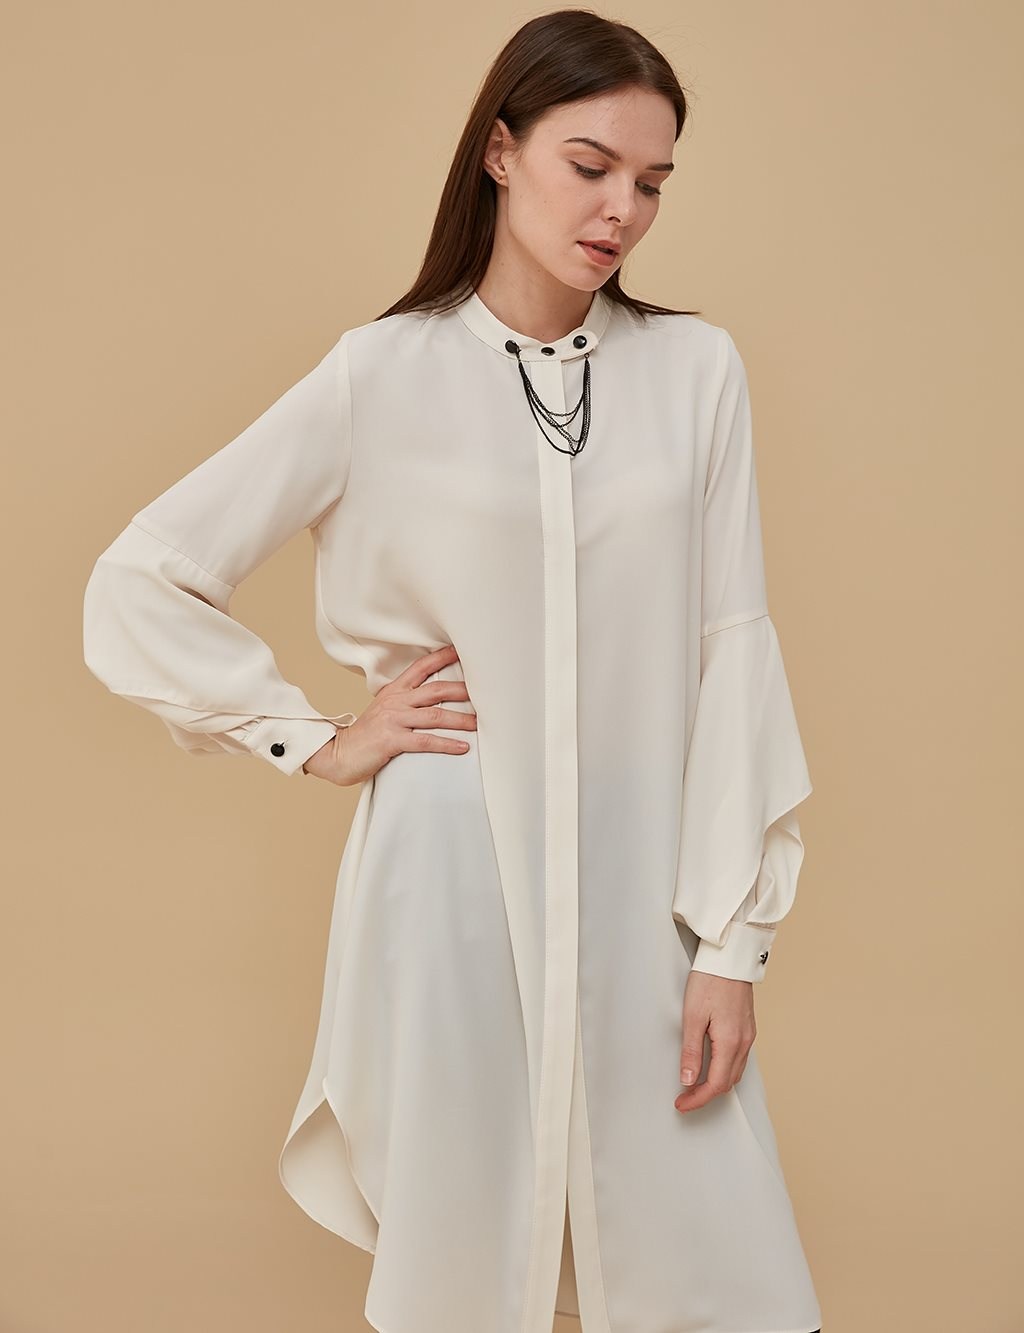 Ruffle Detailed Sleeve Tunic A9 21126 Cream